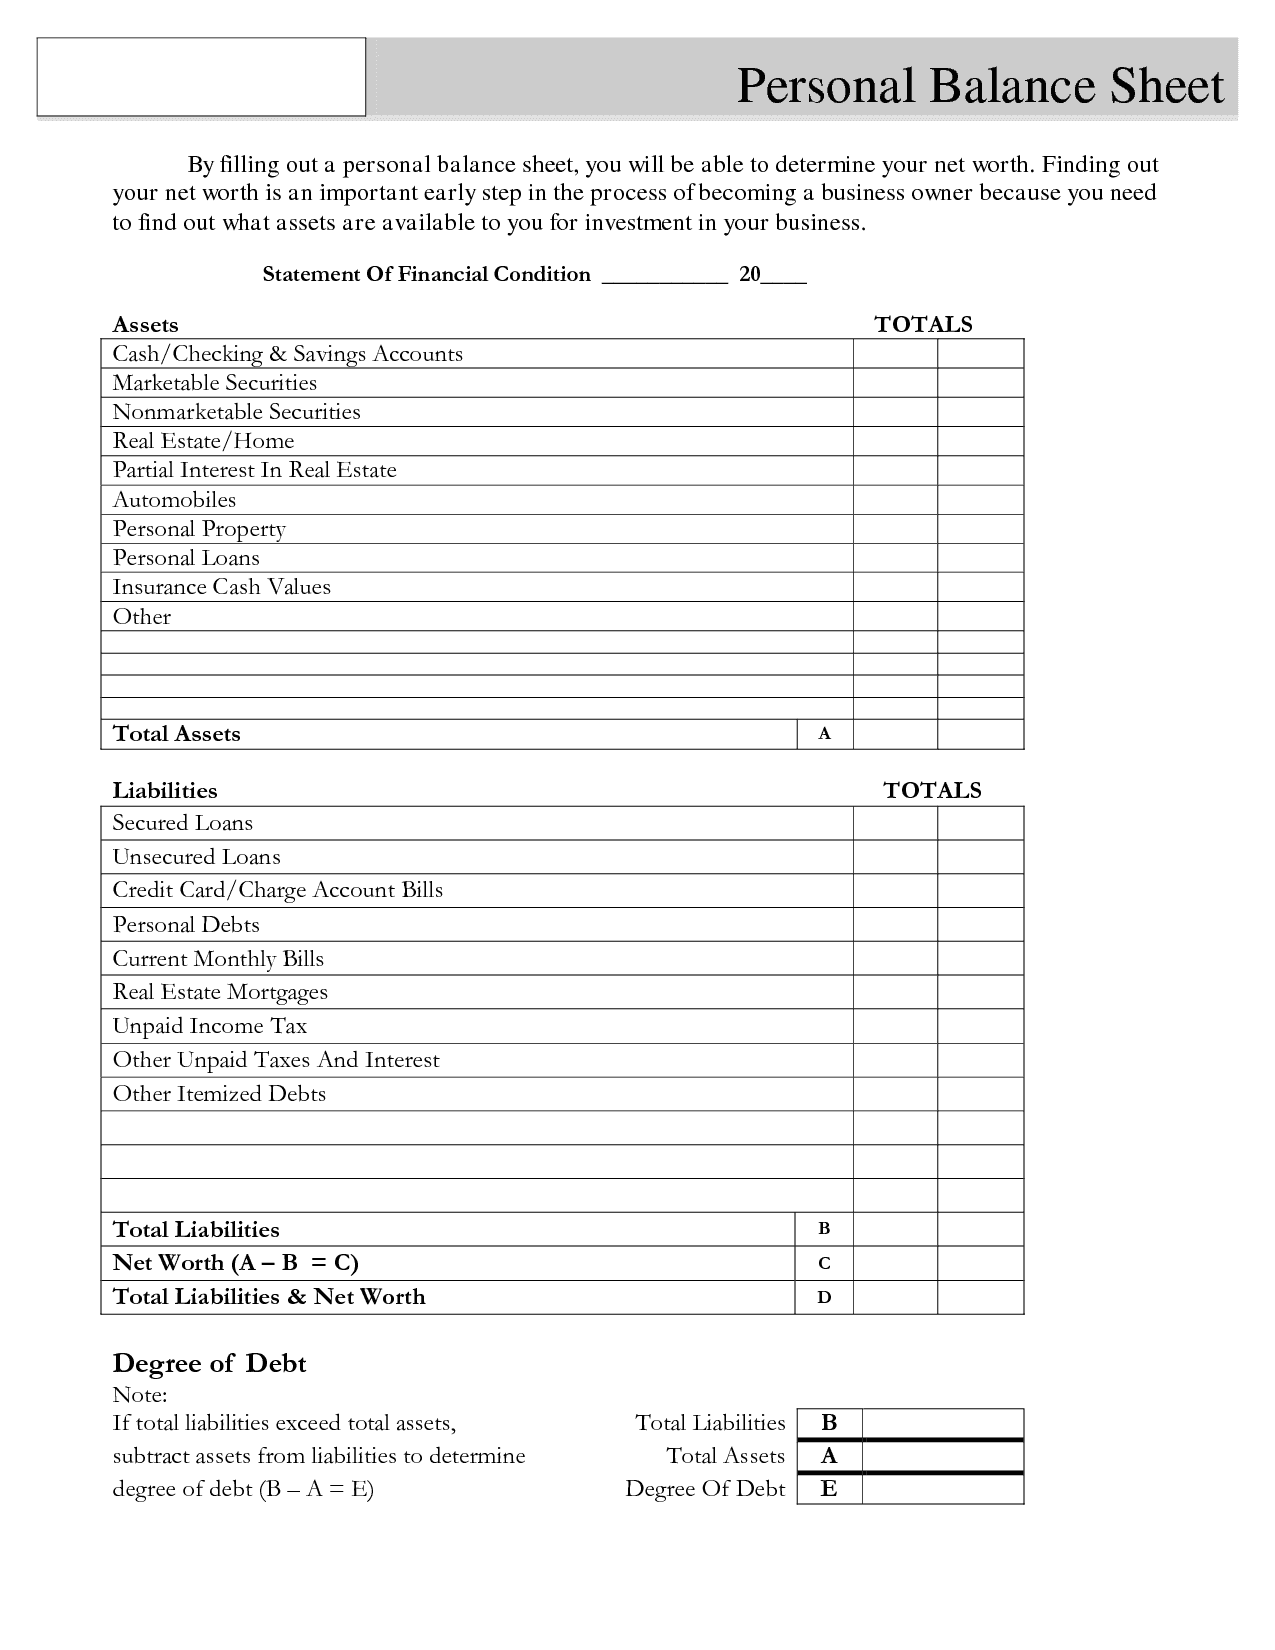 Balance Sheet Template For Small Business And Personal Balance Sheet Template Word